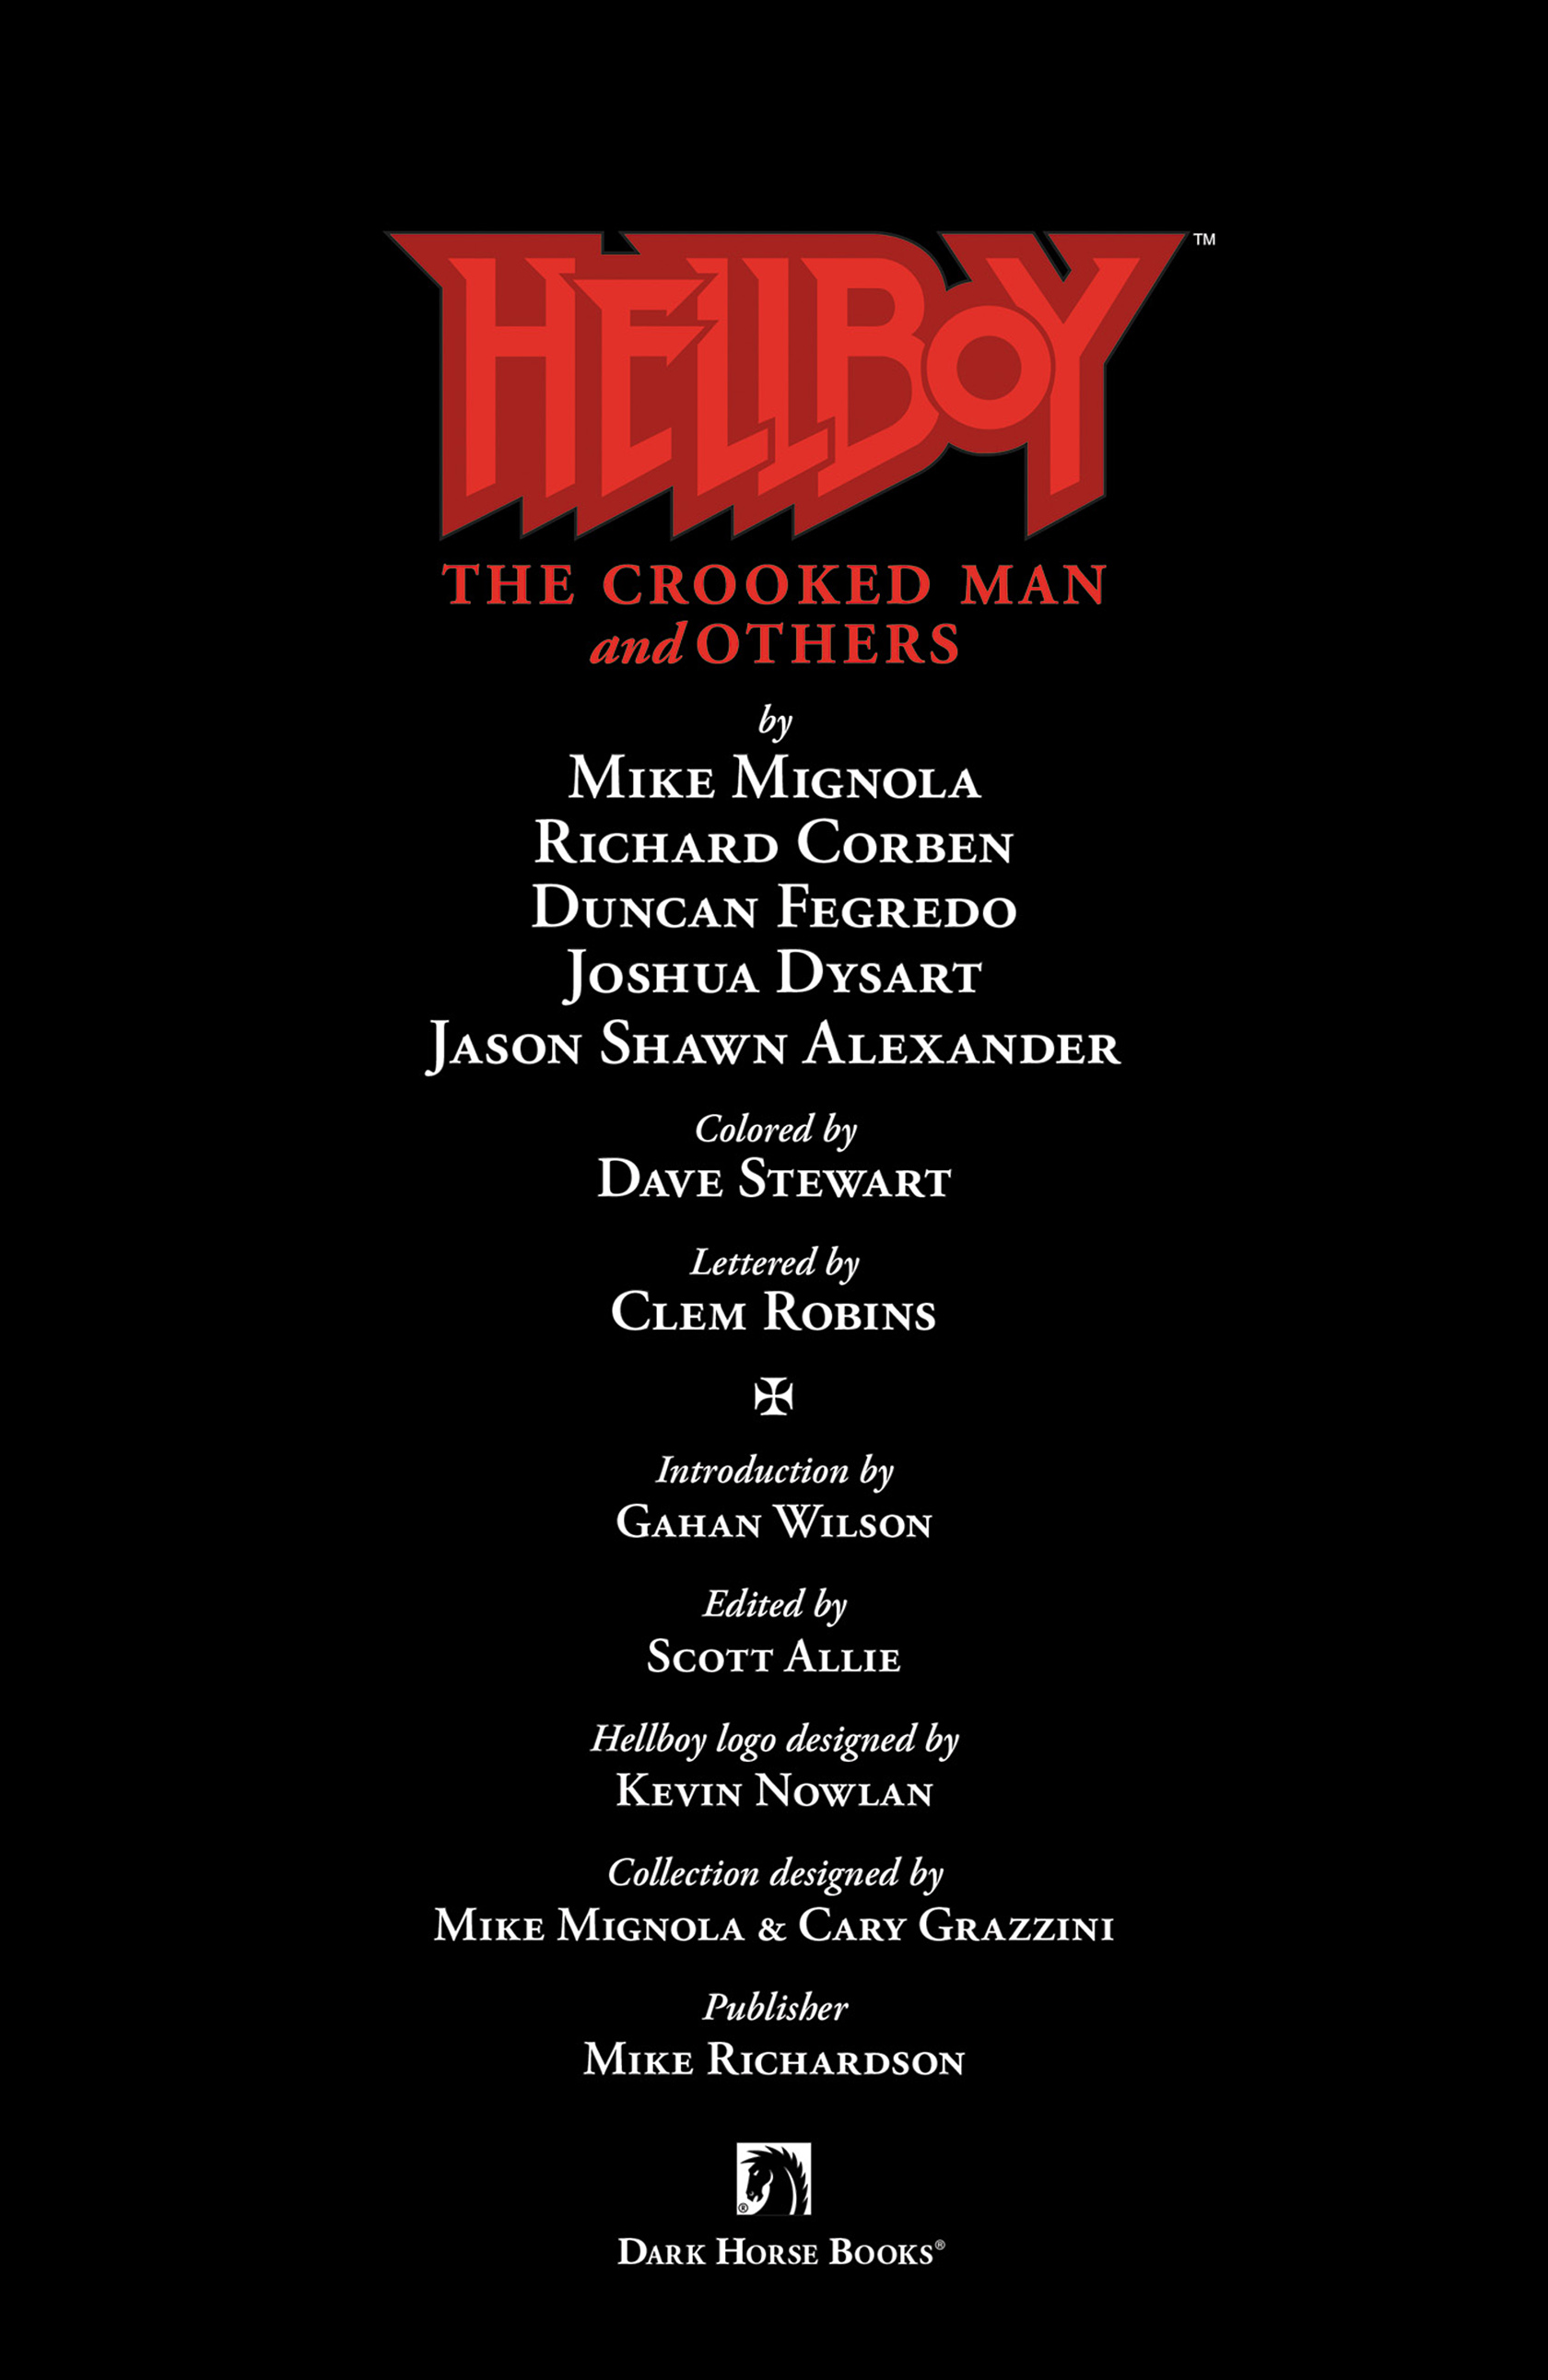 Read online Hellboy: The Crooked Man and Others comic -  Issue # TPB - 4